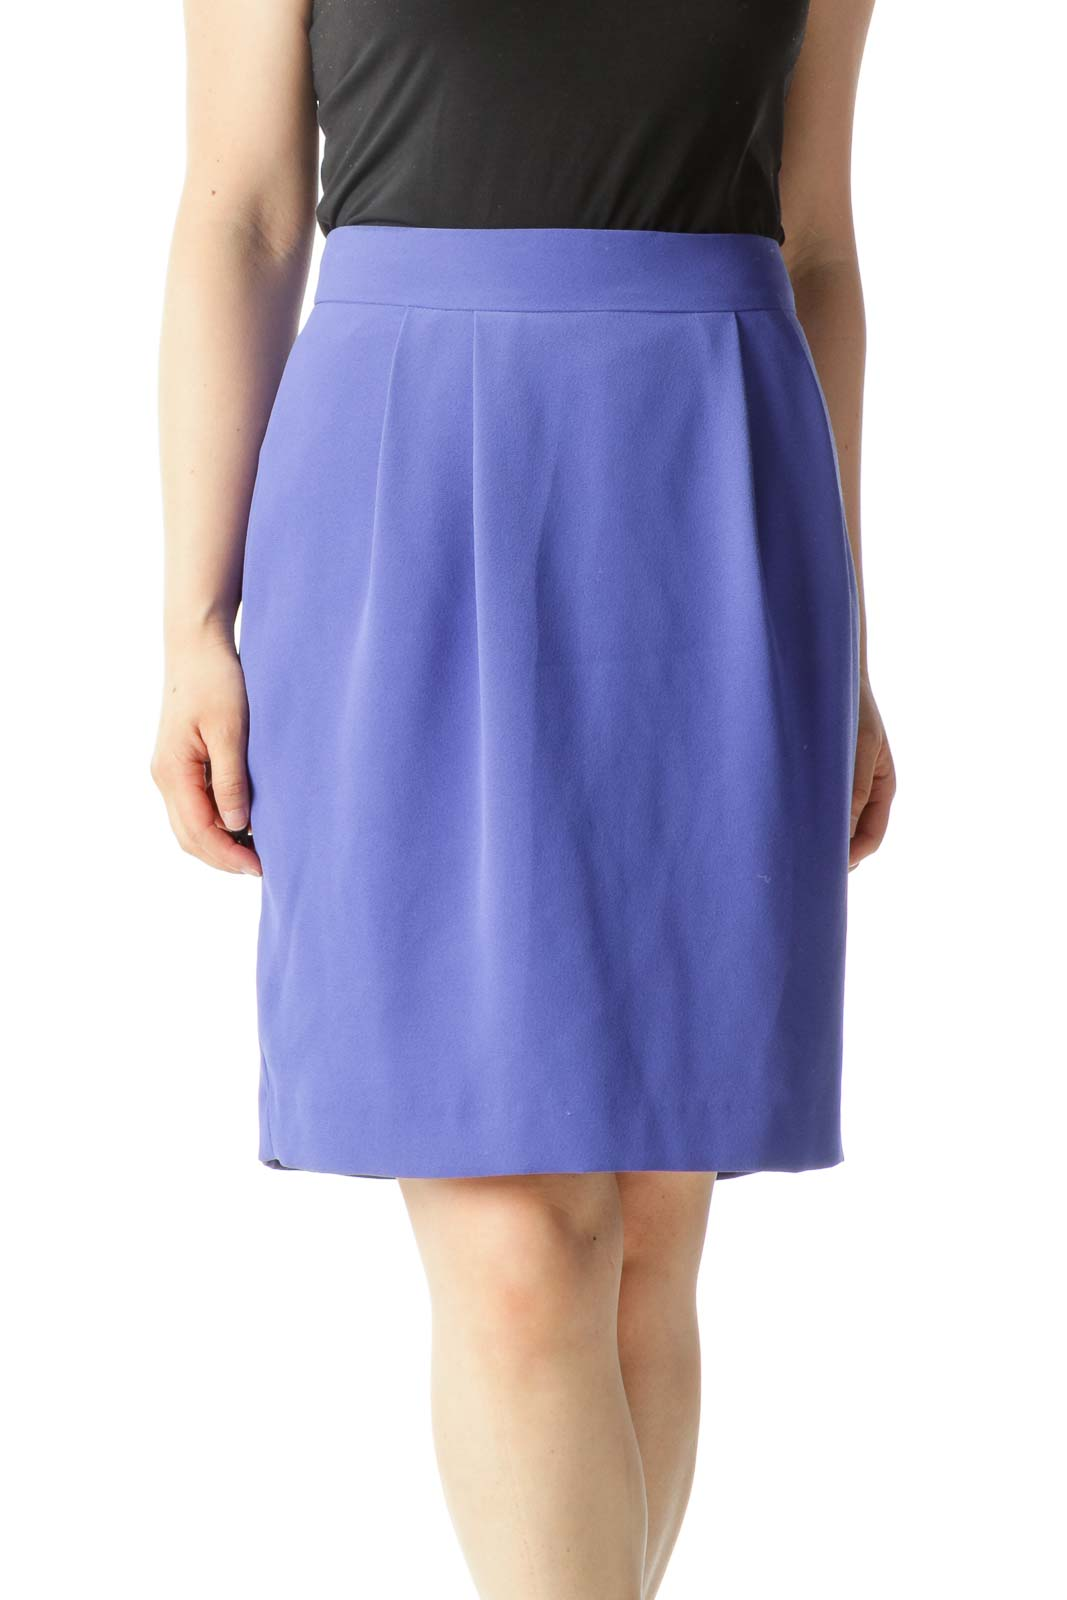 Blue Pleated Zippered A-Line Skirt Front